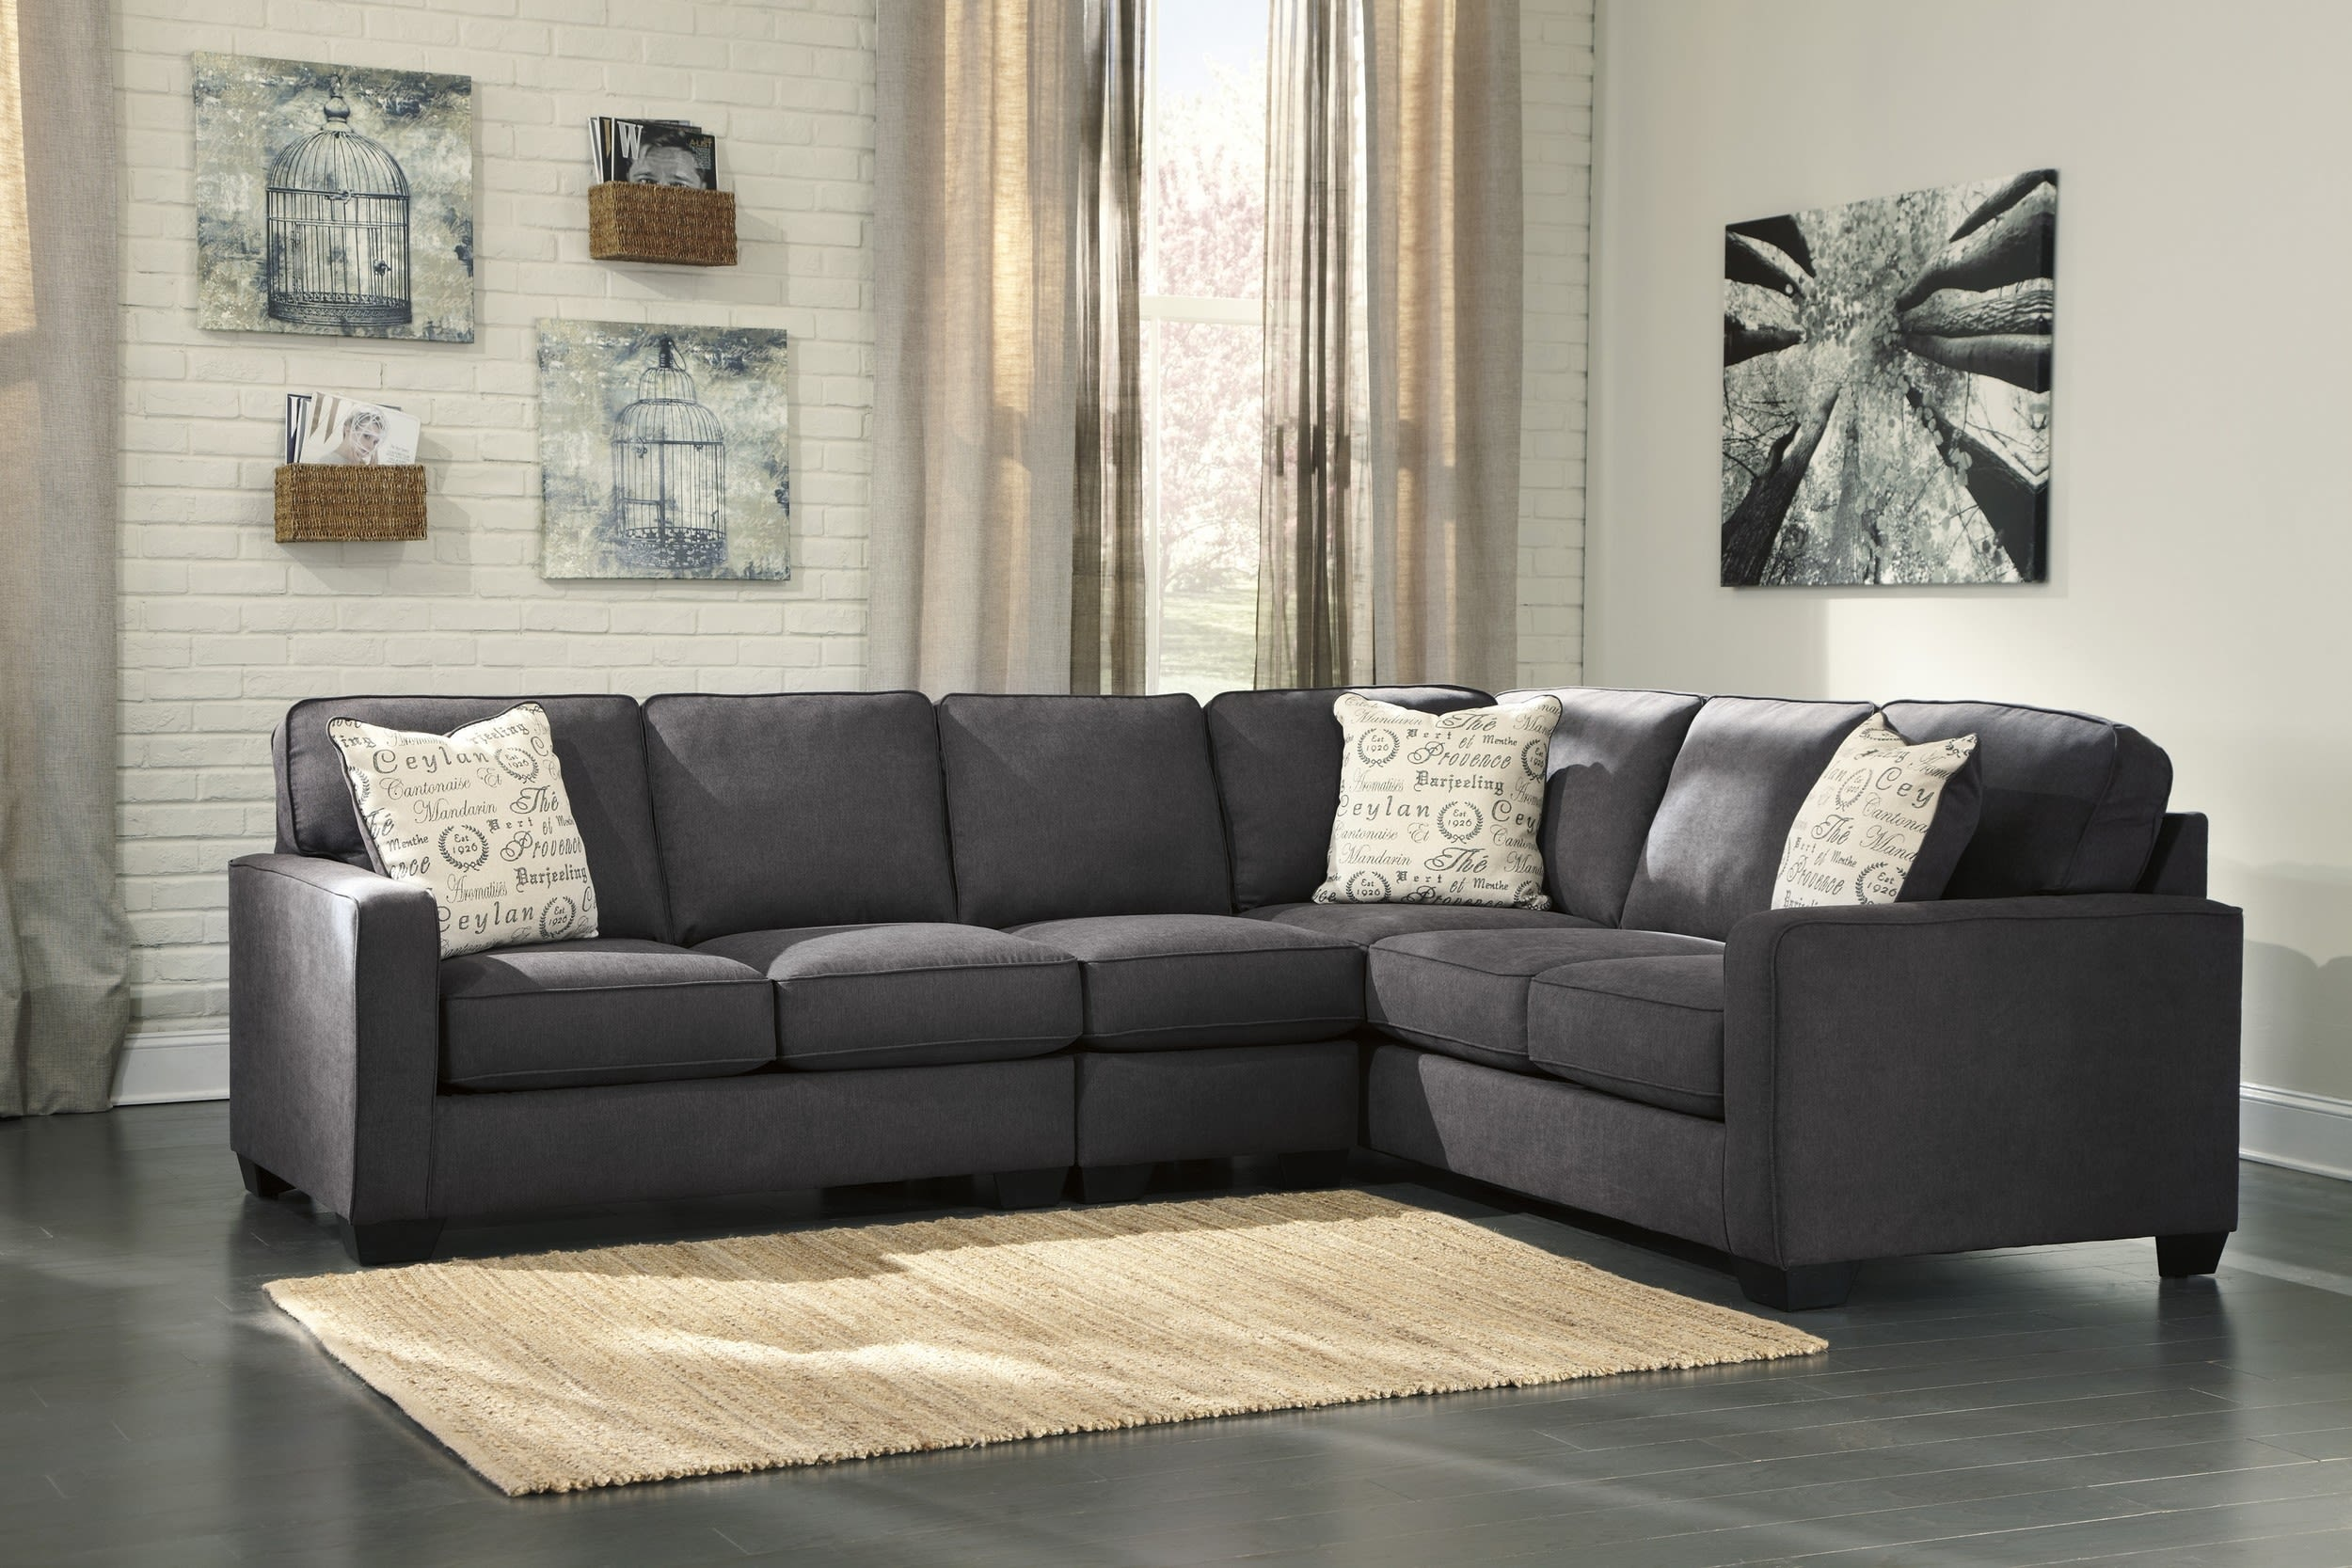 Alenya Charcoal 3 Piece Sectional Sofa Set